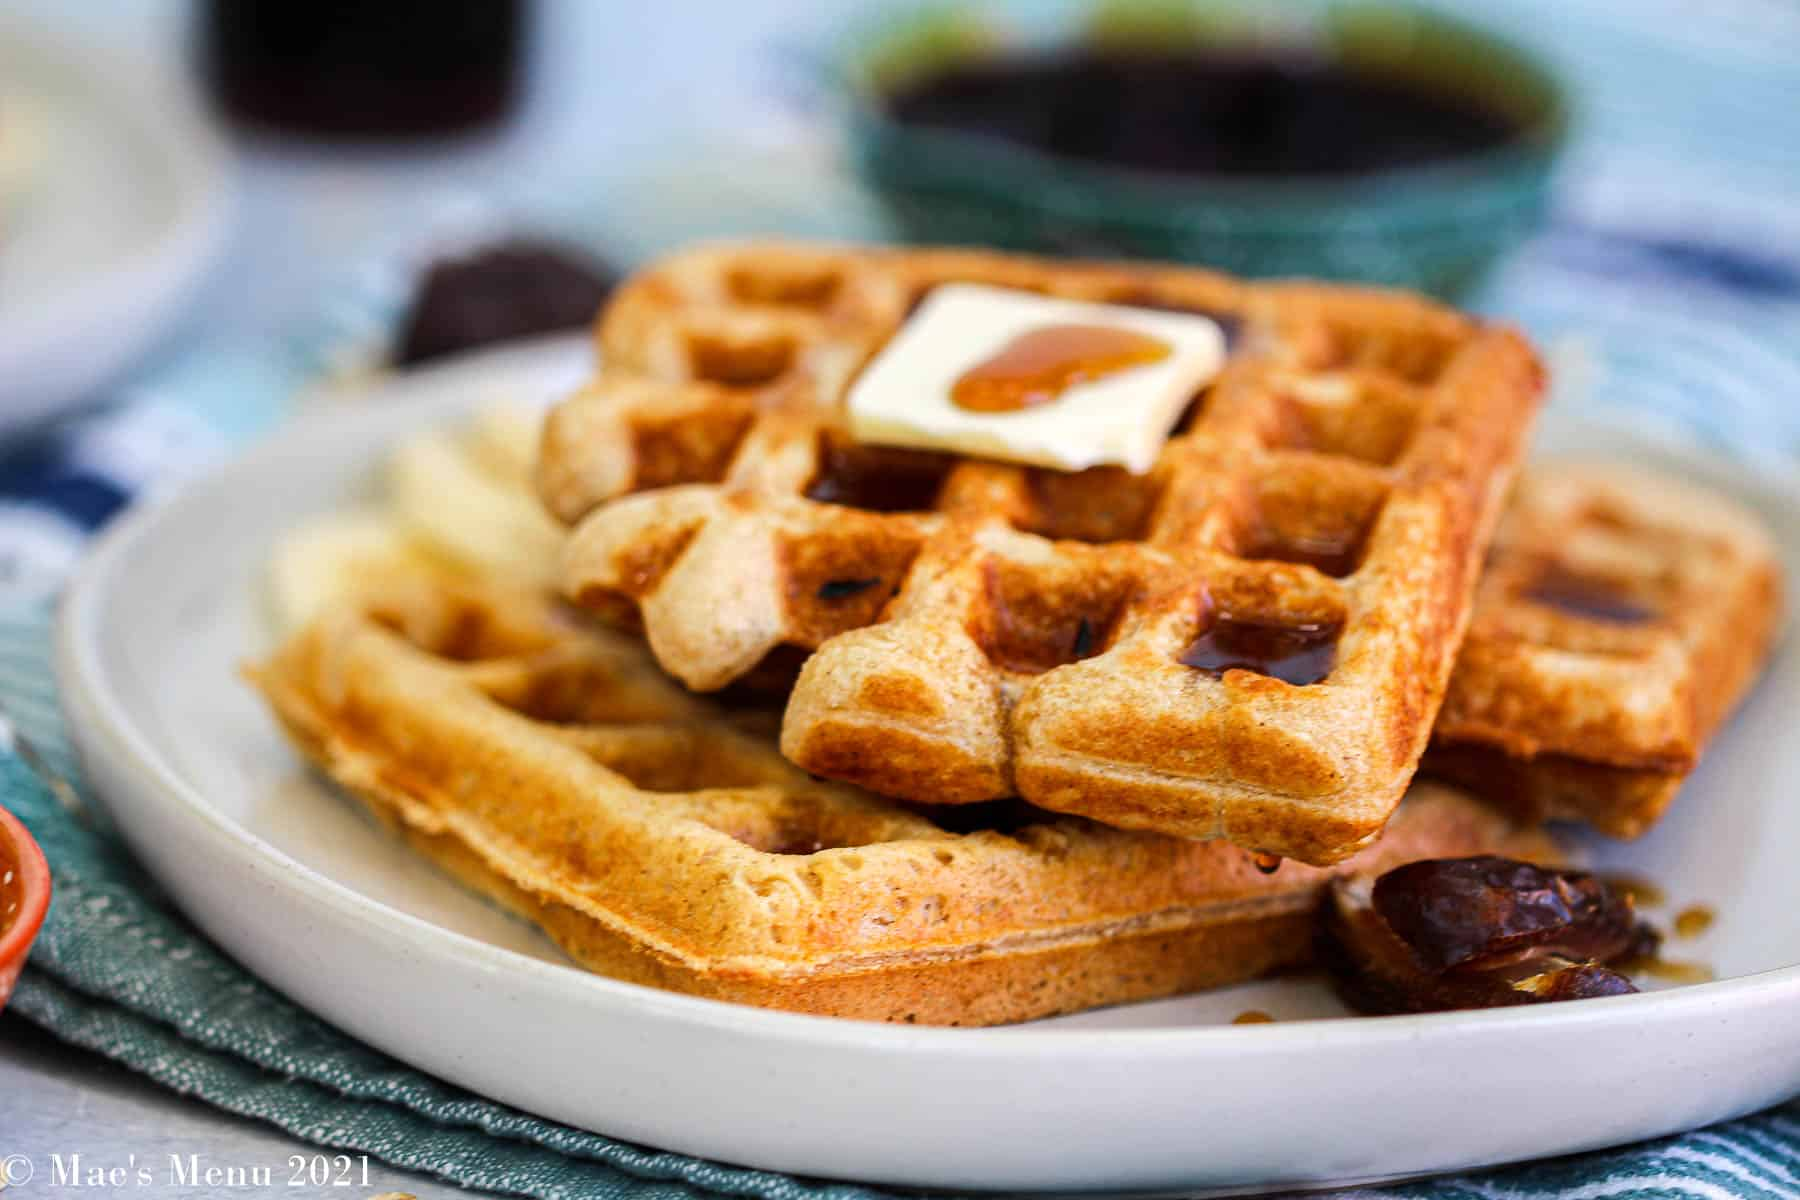 a side shot of a plate of whole wheat waffles with butter and syrup